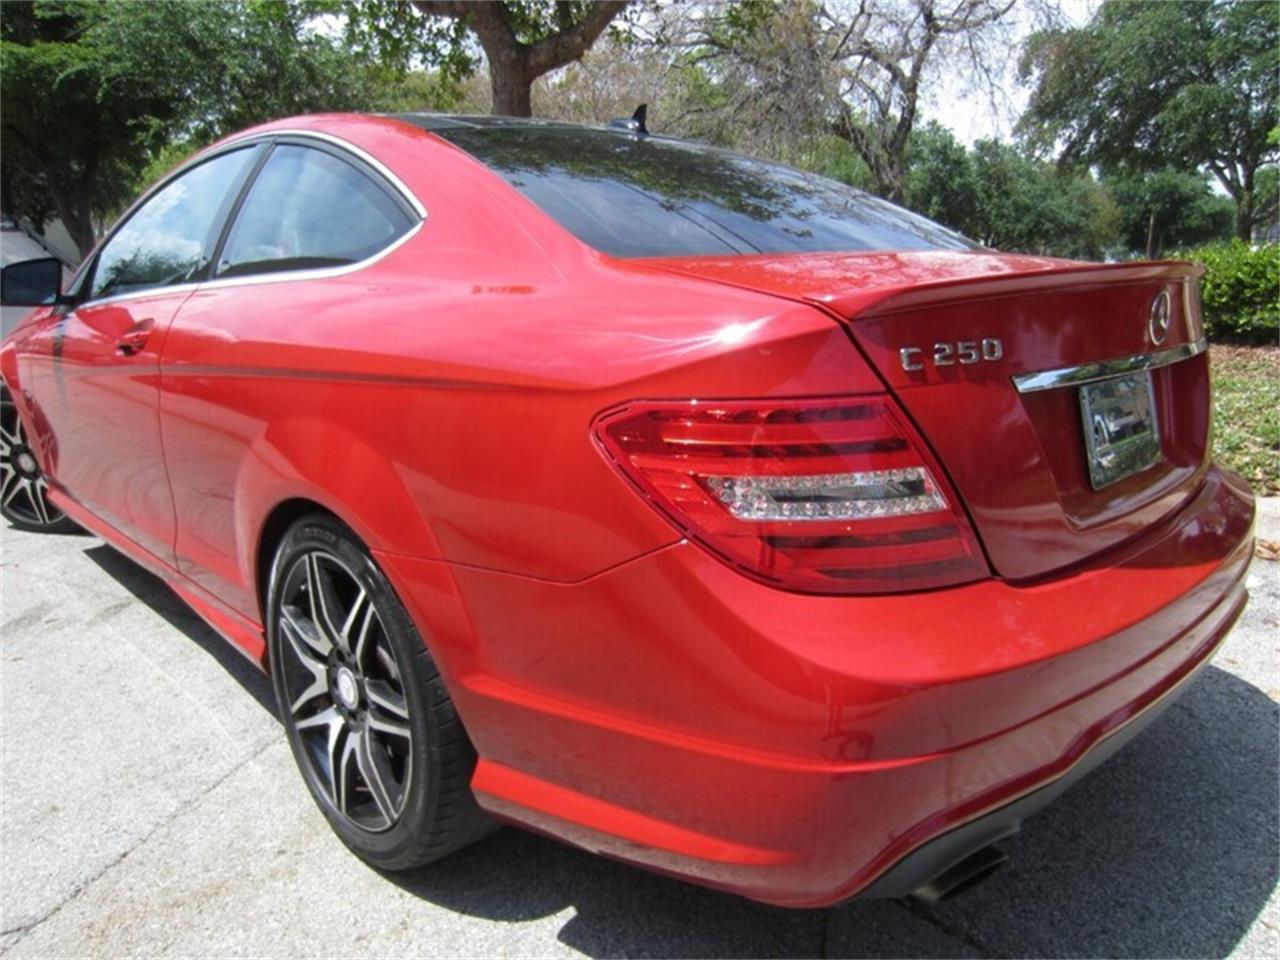 2013 Mercedes-Benz C250 for sale in Delray Beach, FL – photo 12